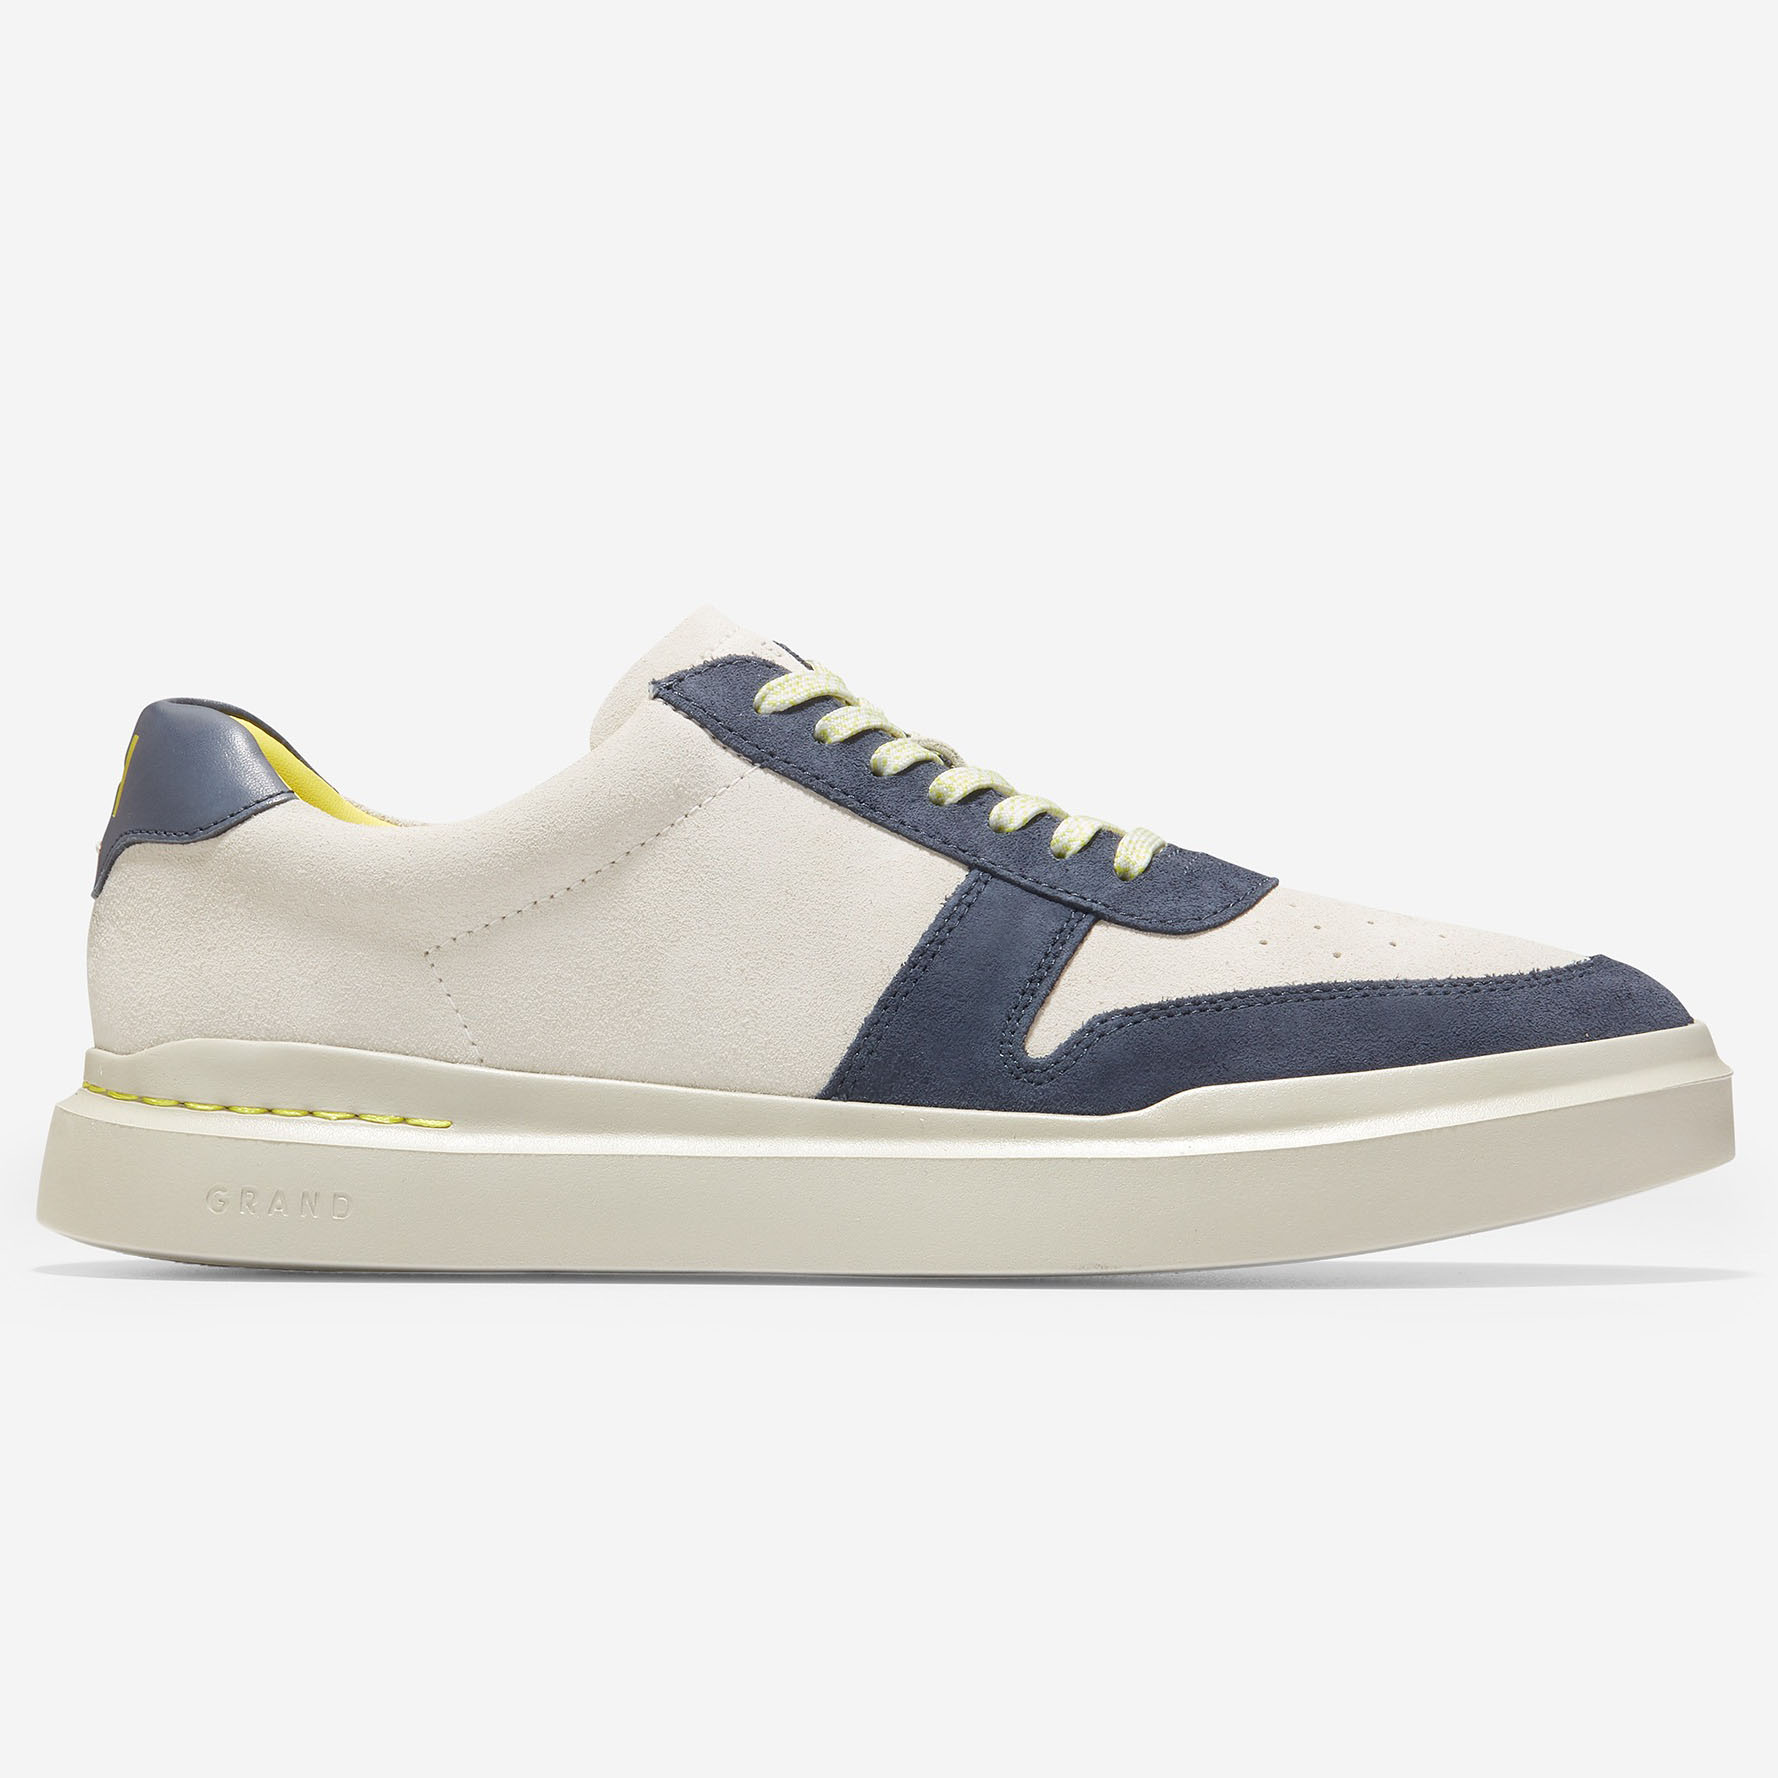 Cole Haan Grand Prø Rally Court Sneaker, best shoes for standing